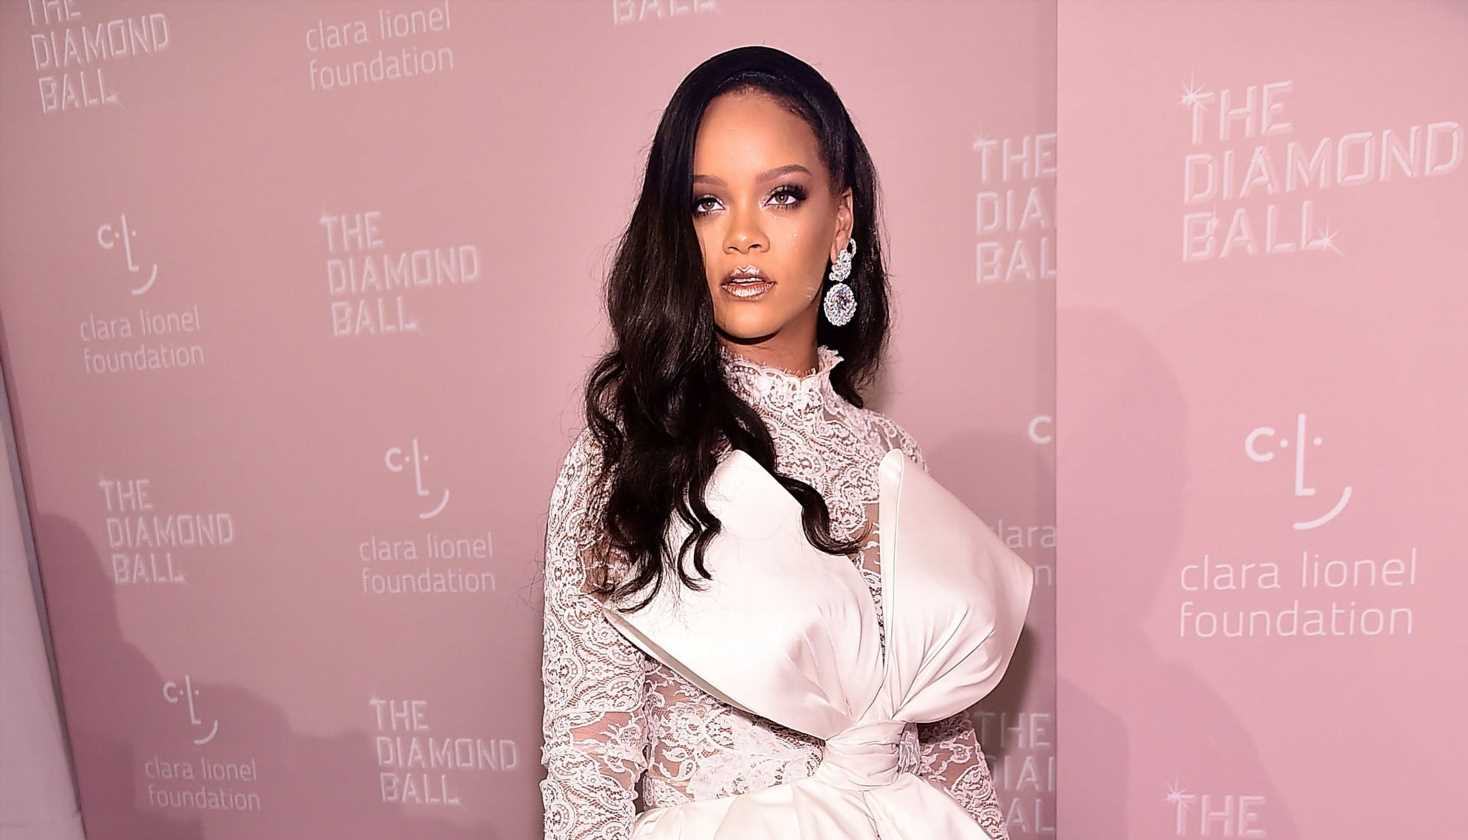 Rihanna's tiny doppelganger turns heads on Instagram, makes singer 'almost drop' her phone